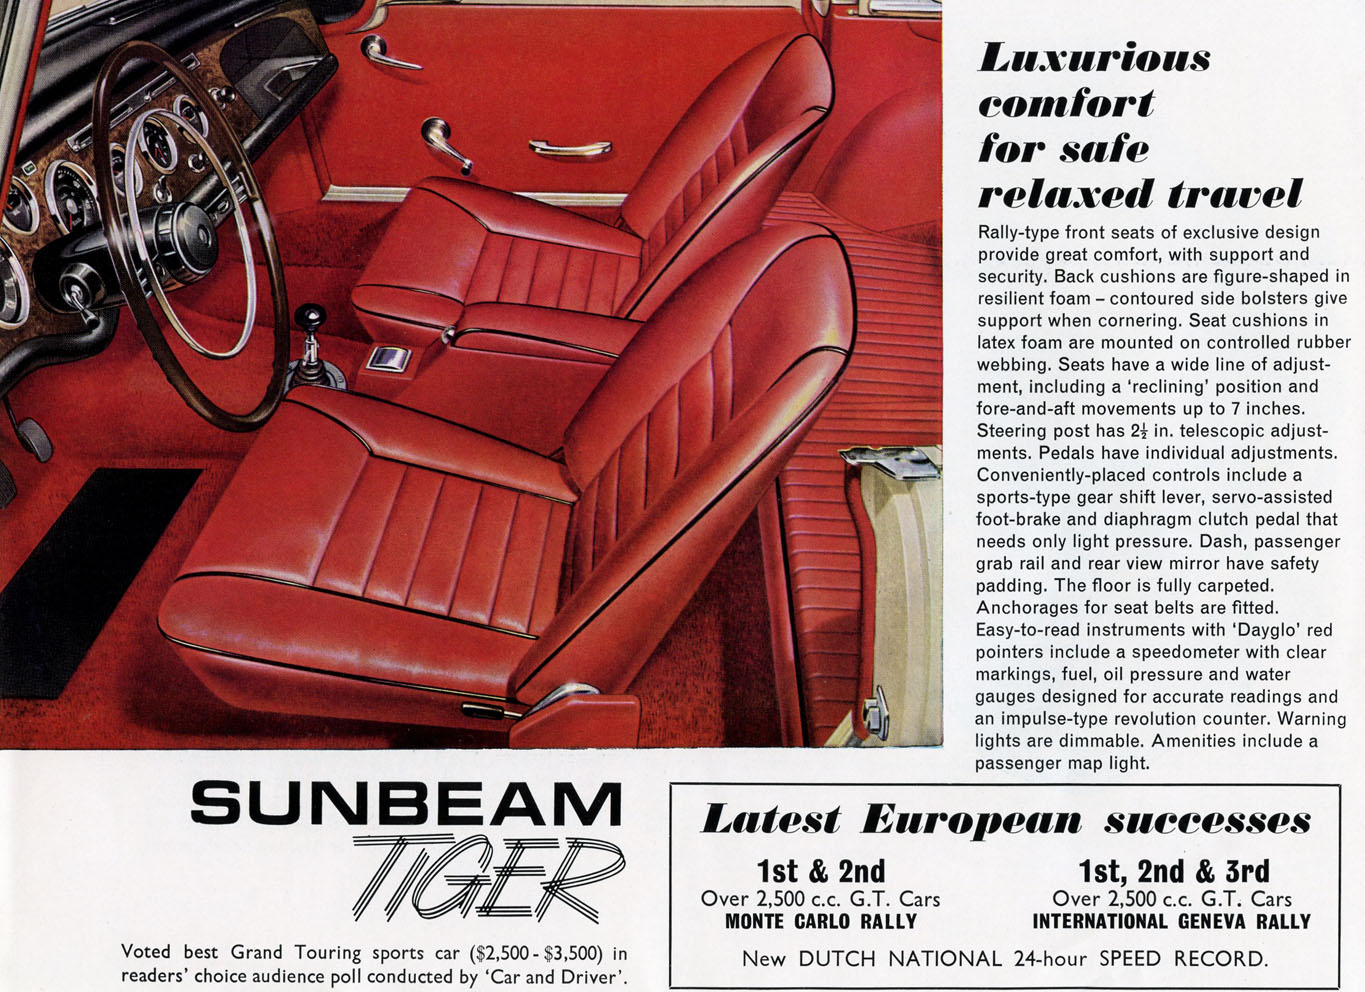 TunnelRam_Sunbeam_Tiger (1).jpg